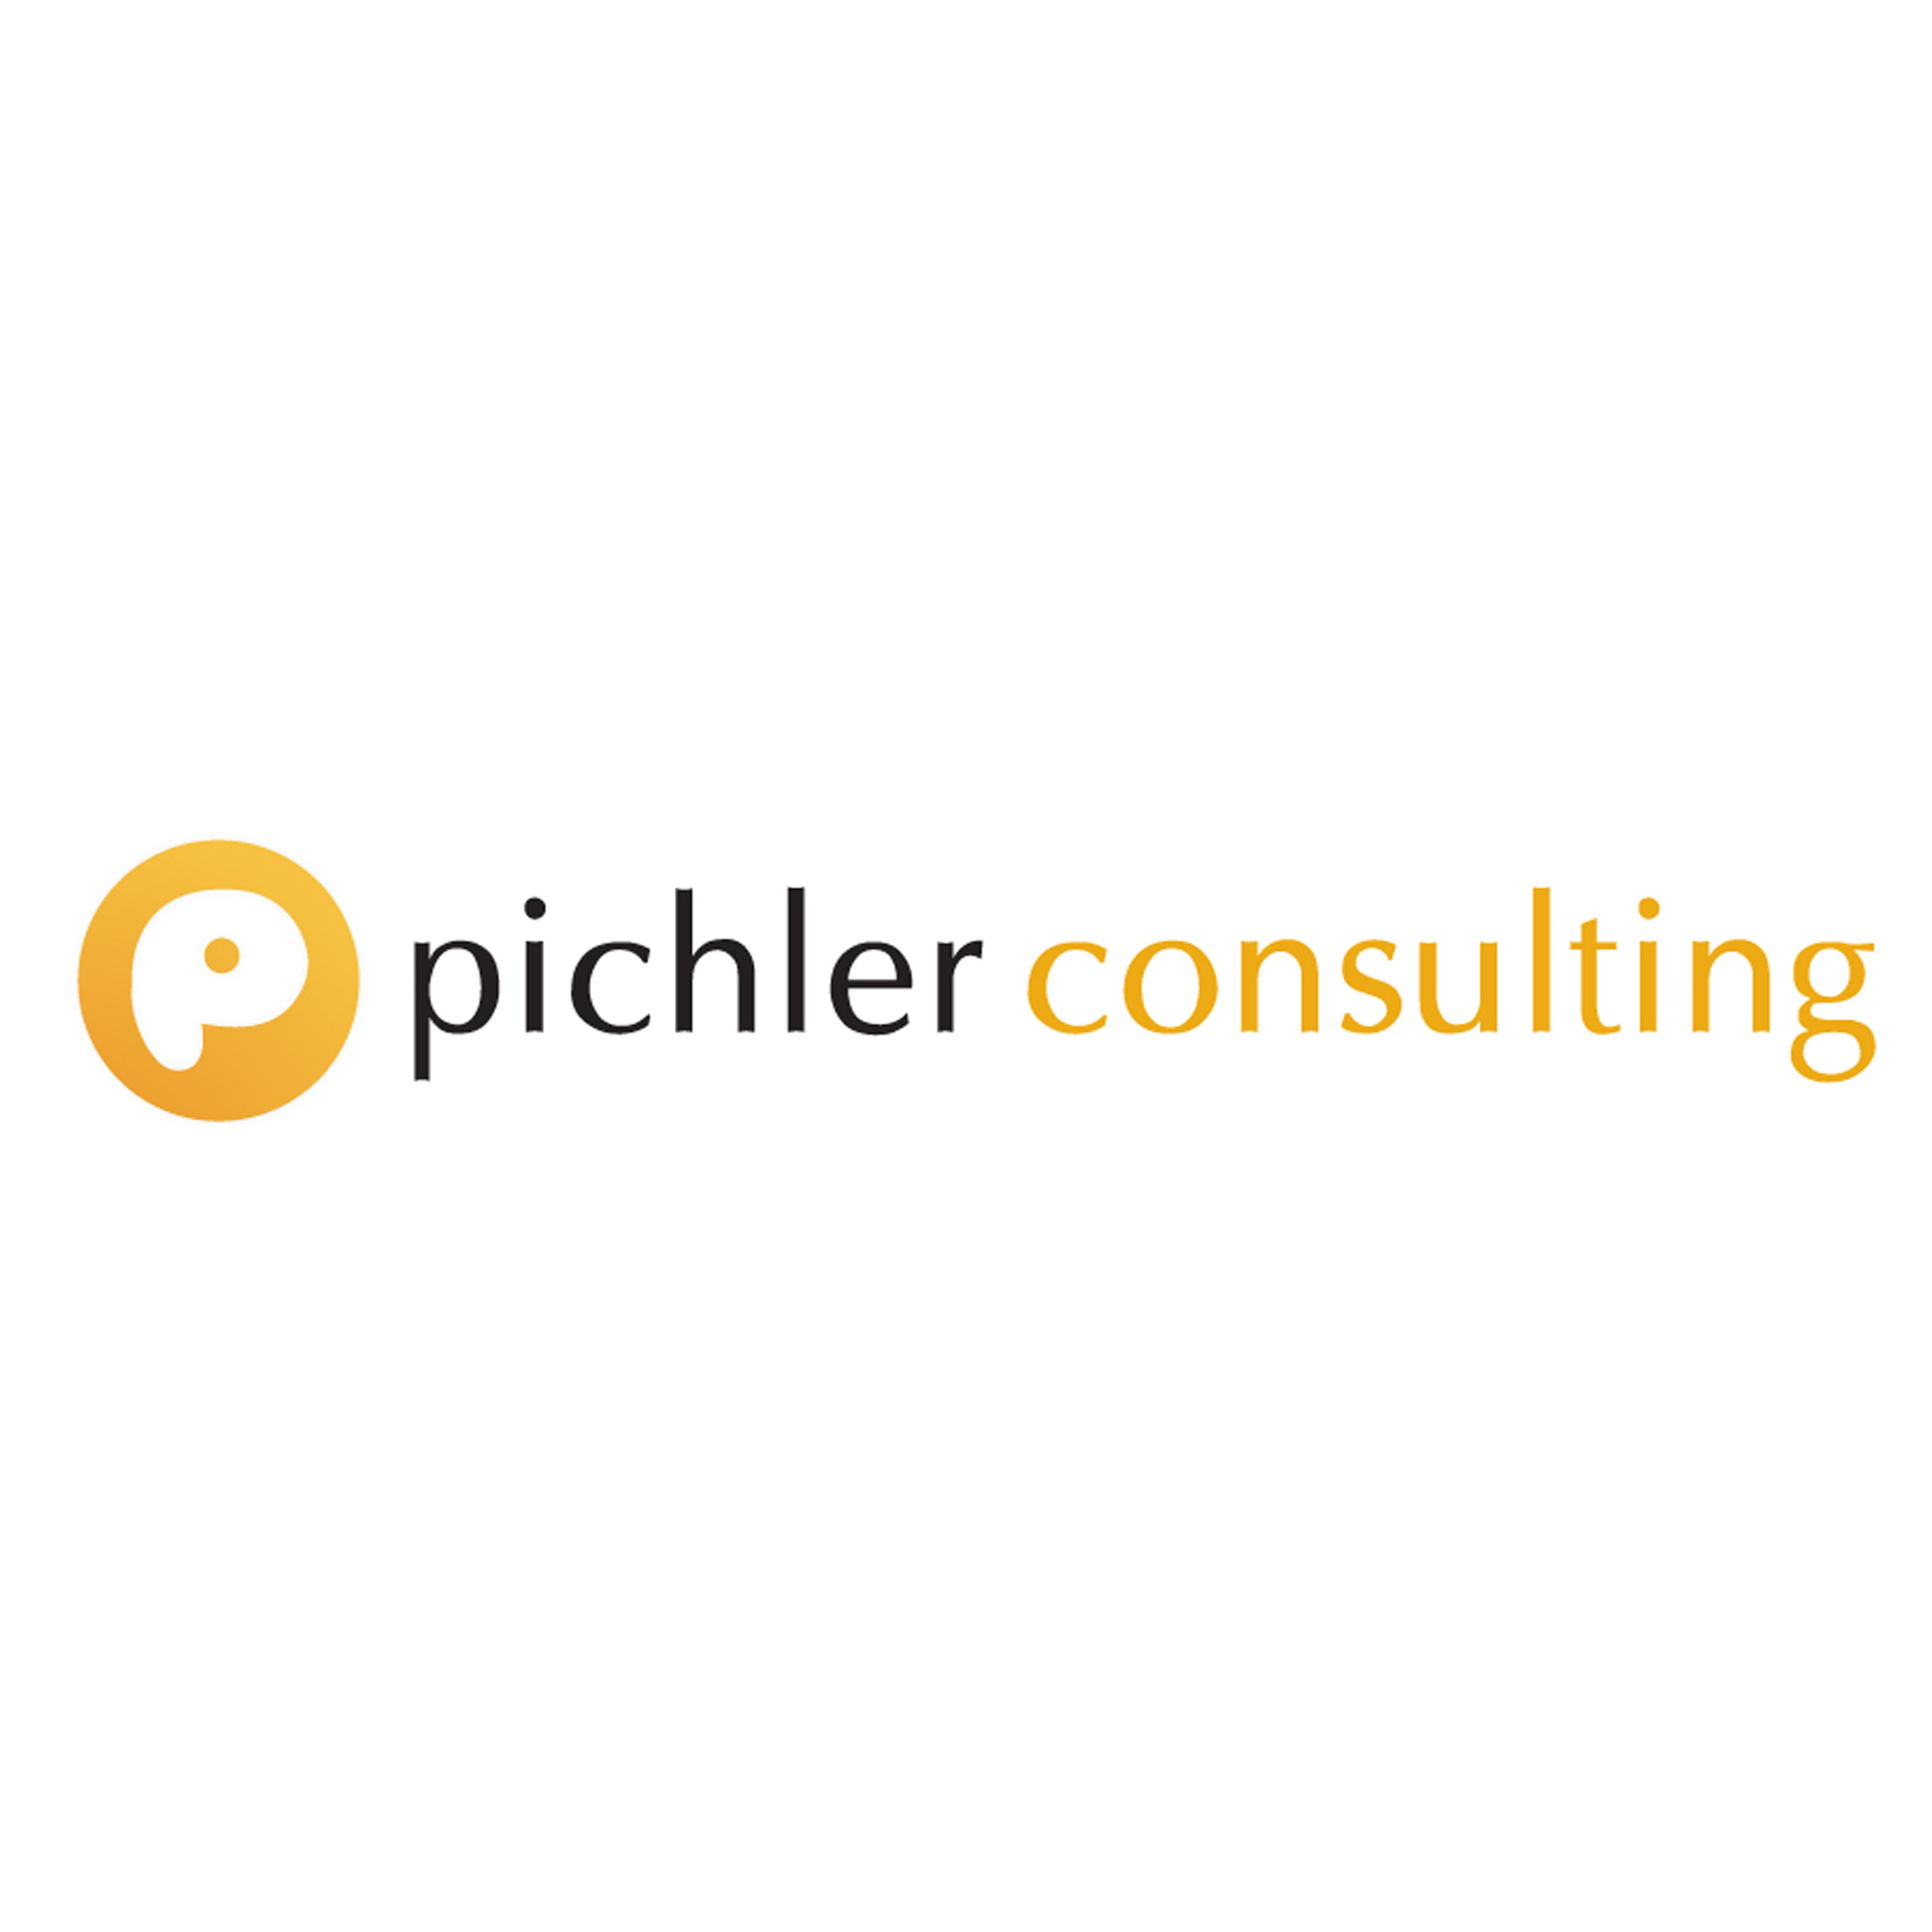 pichler consulting.png